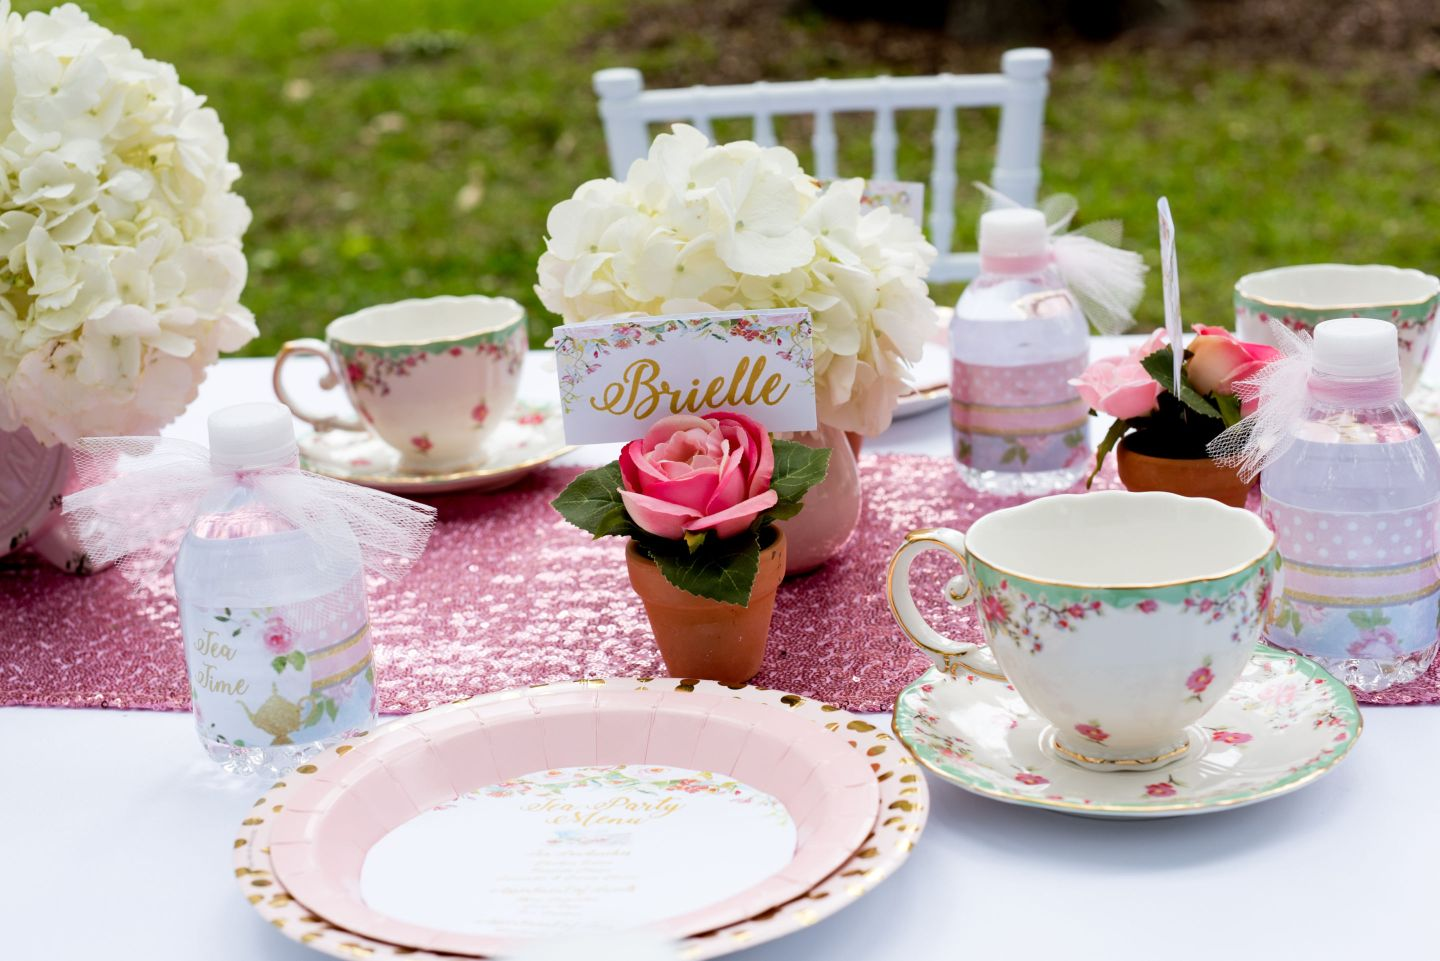 TeaParty-8-1440x961 Children's Tea Party Inspiration - How to Plan a Child's Party with a Photographer